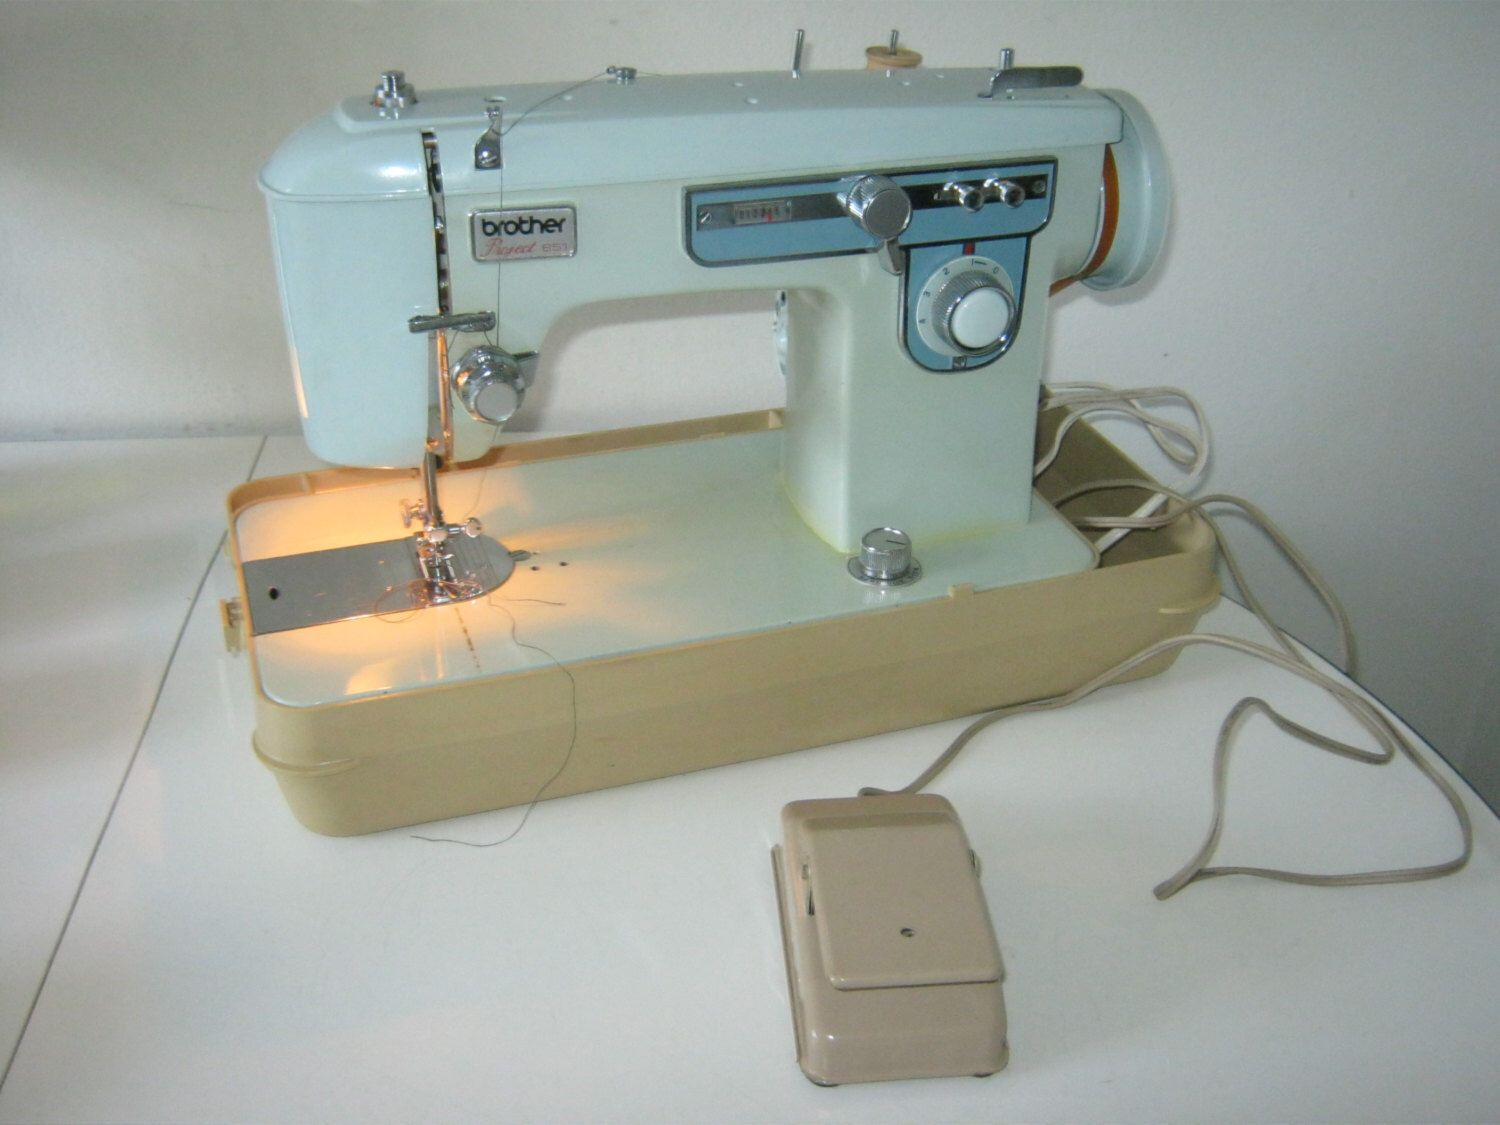 how to clean brother sewing machine